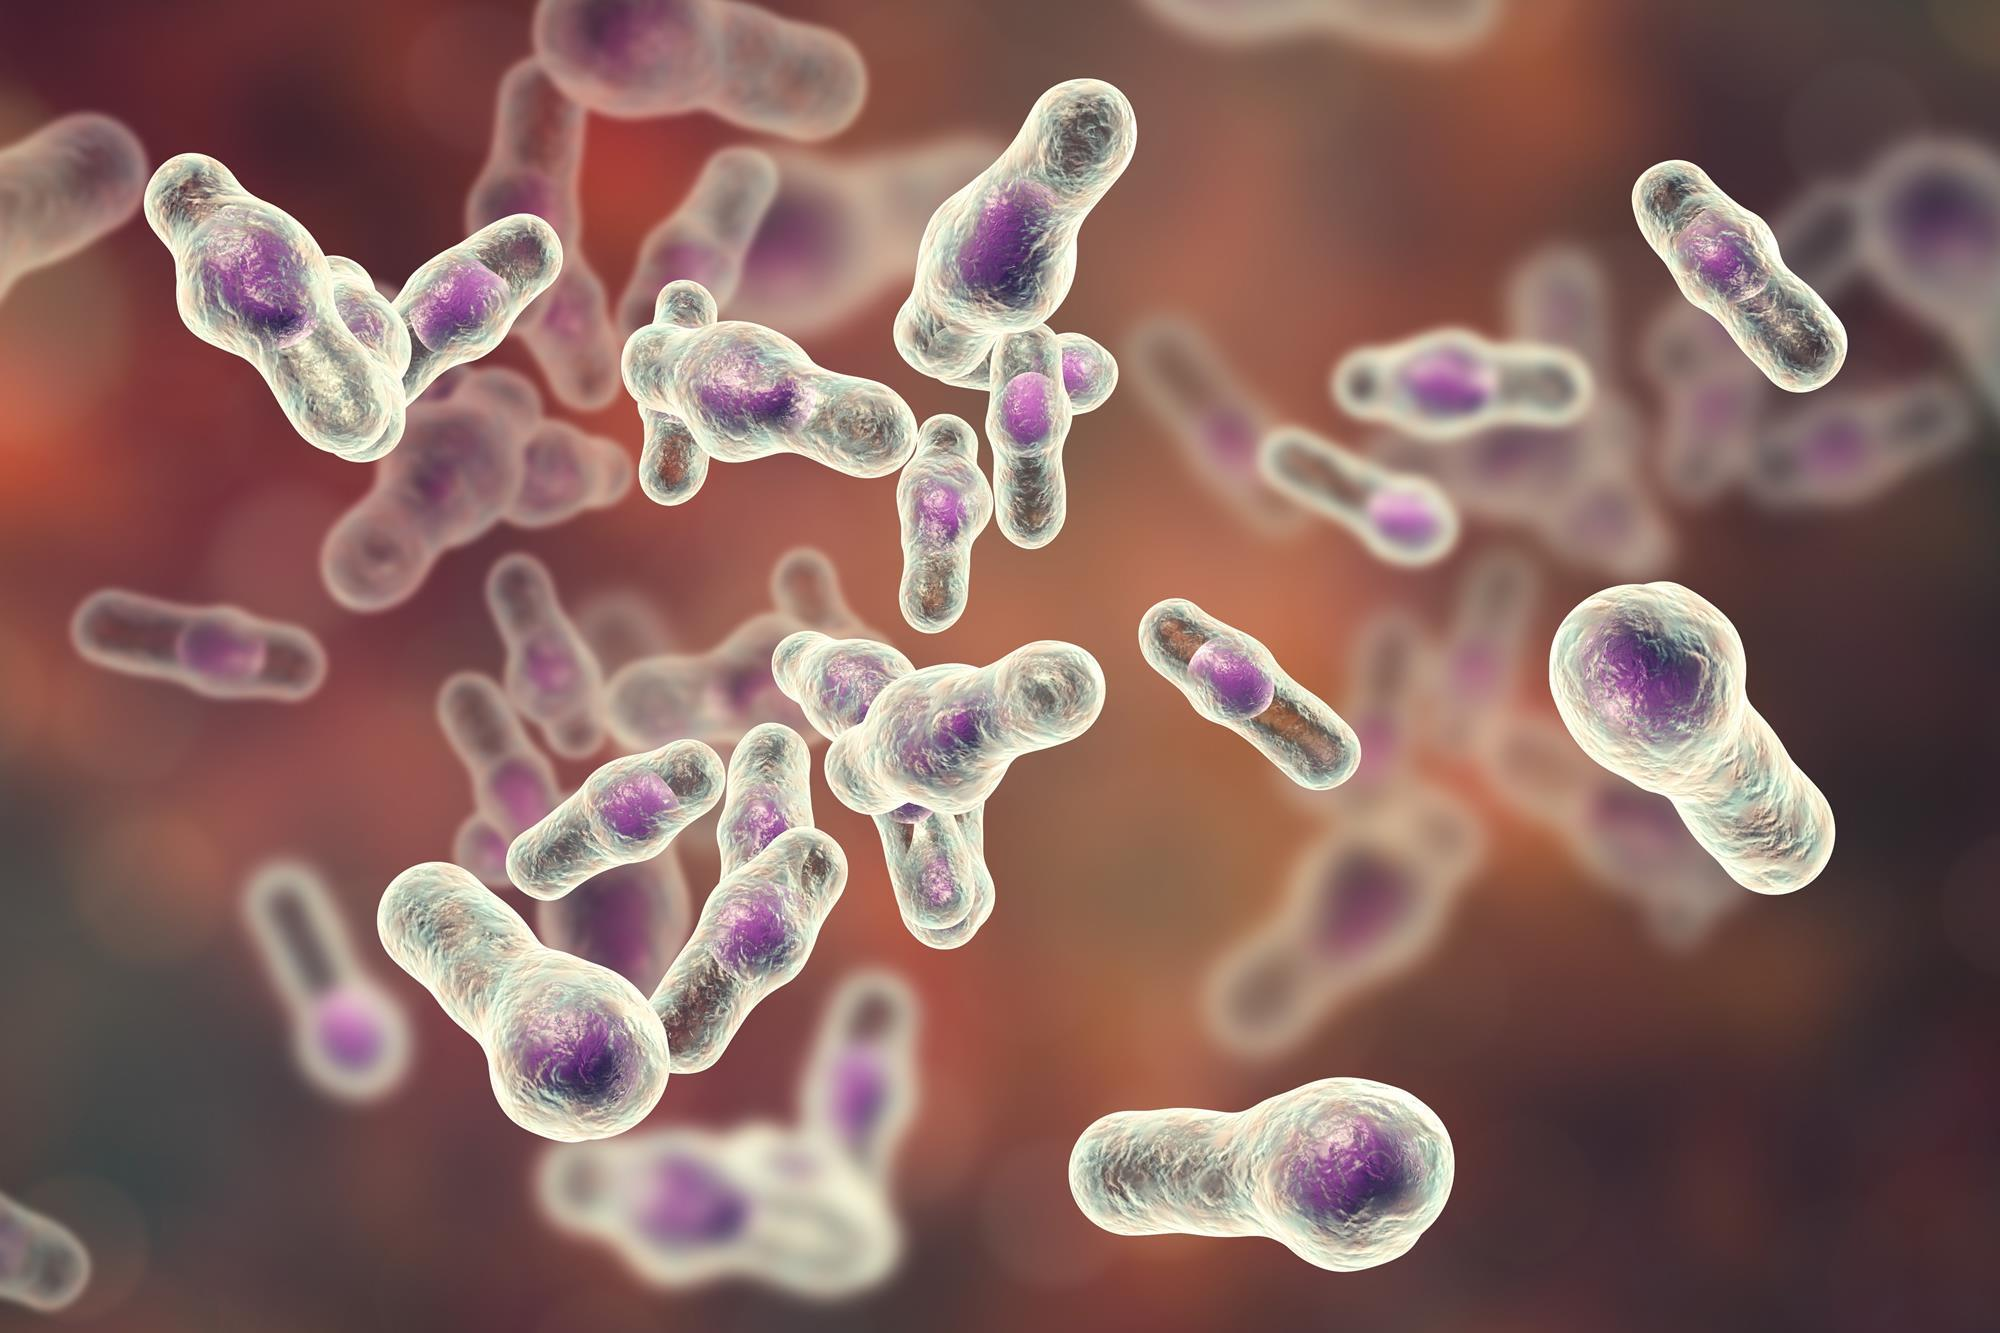 Switching to sulfur stops deadly bacteria growth